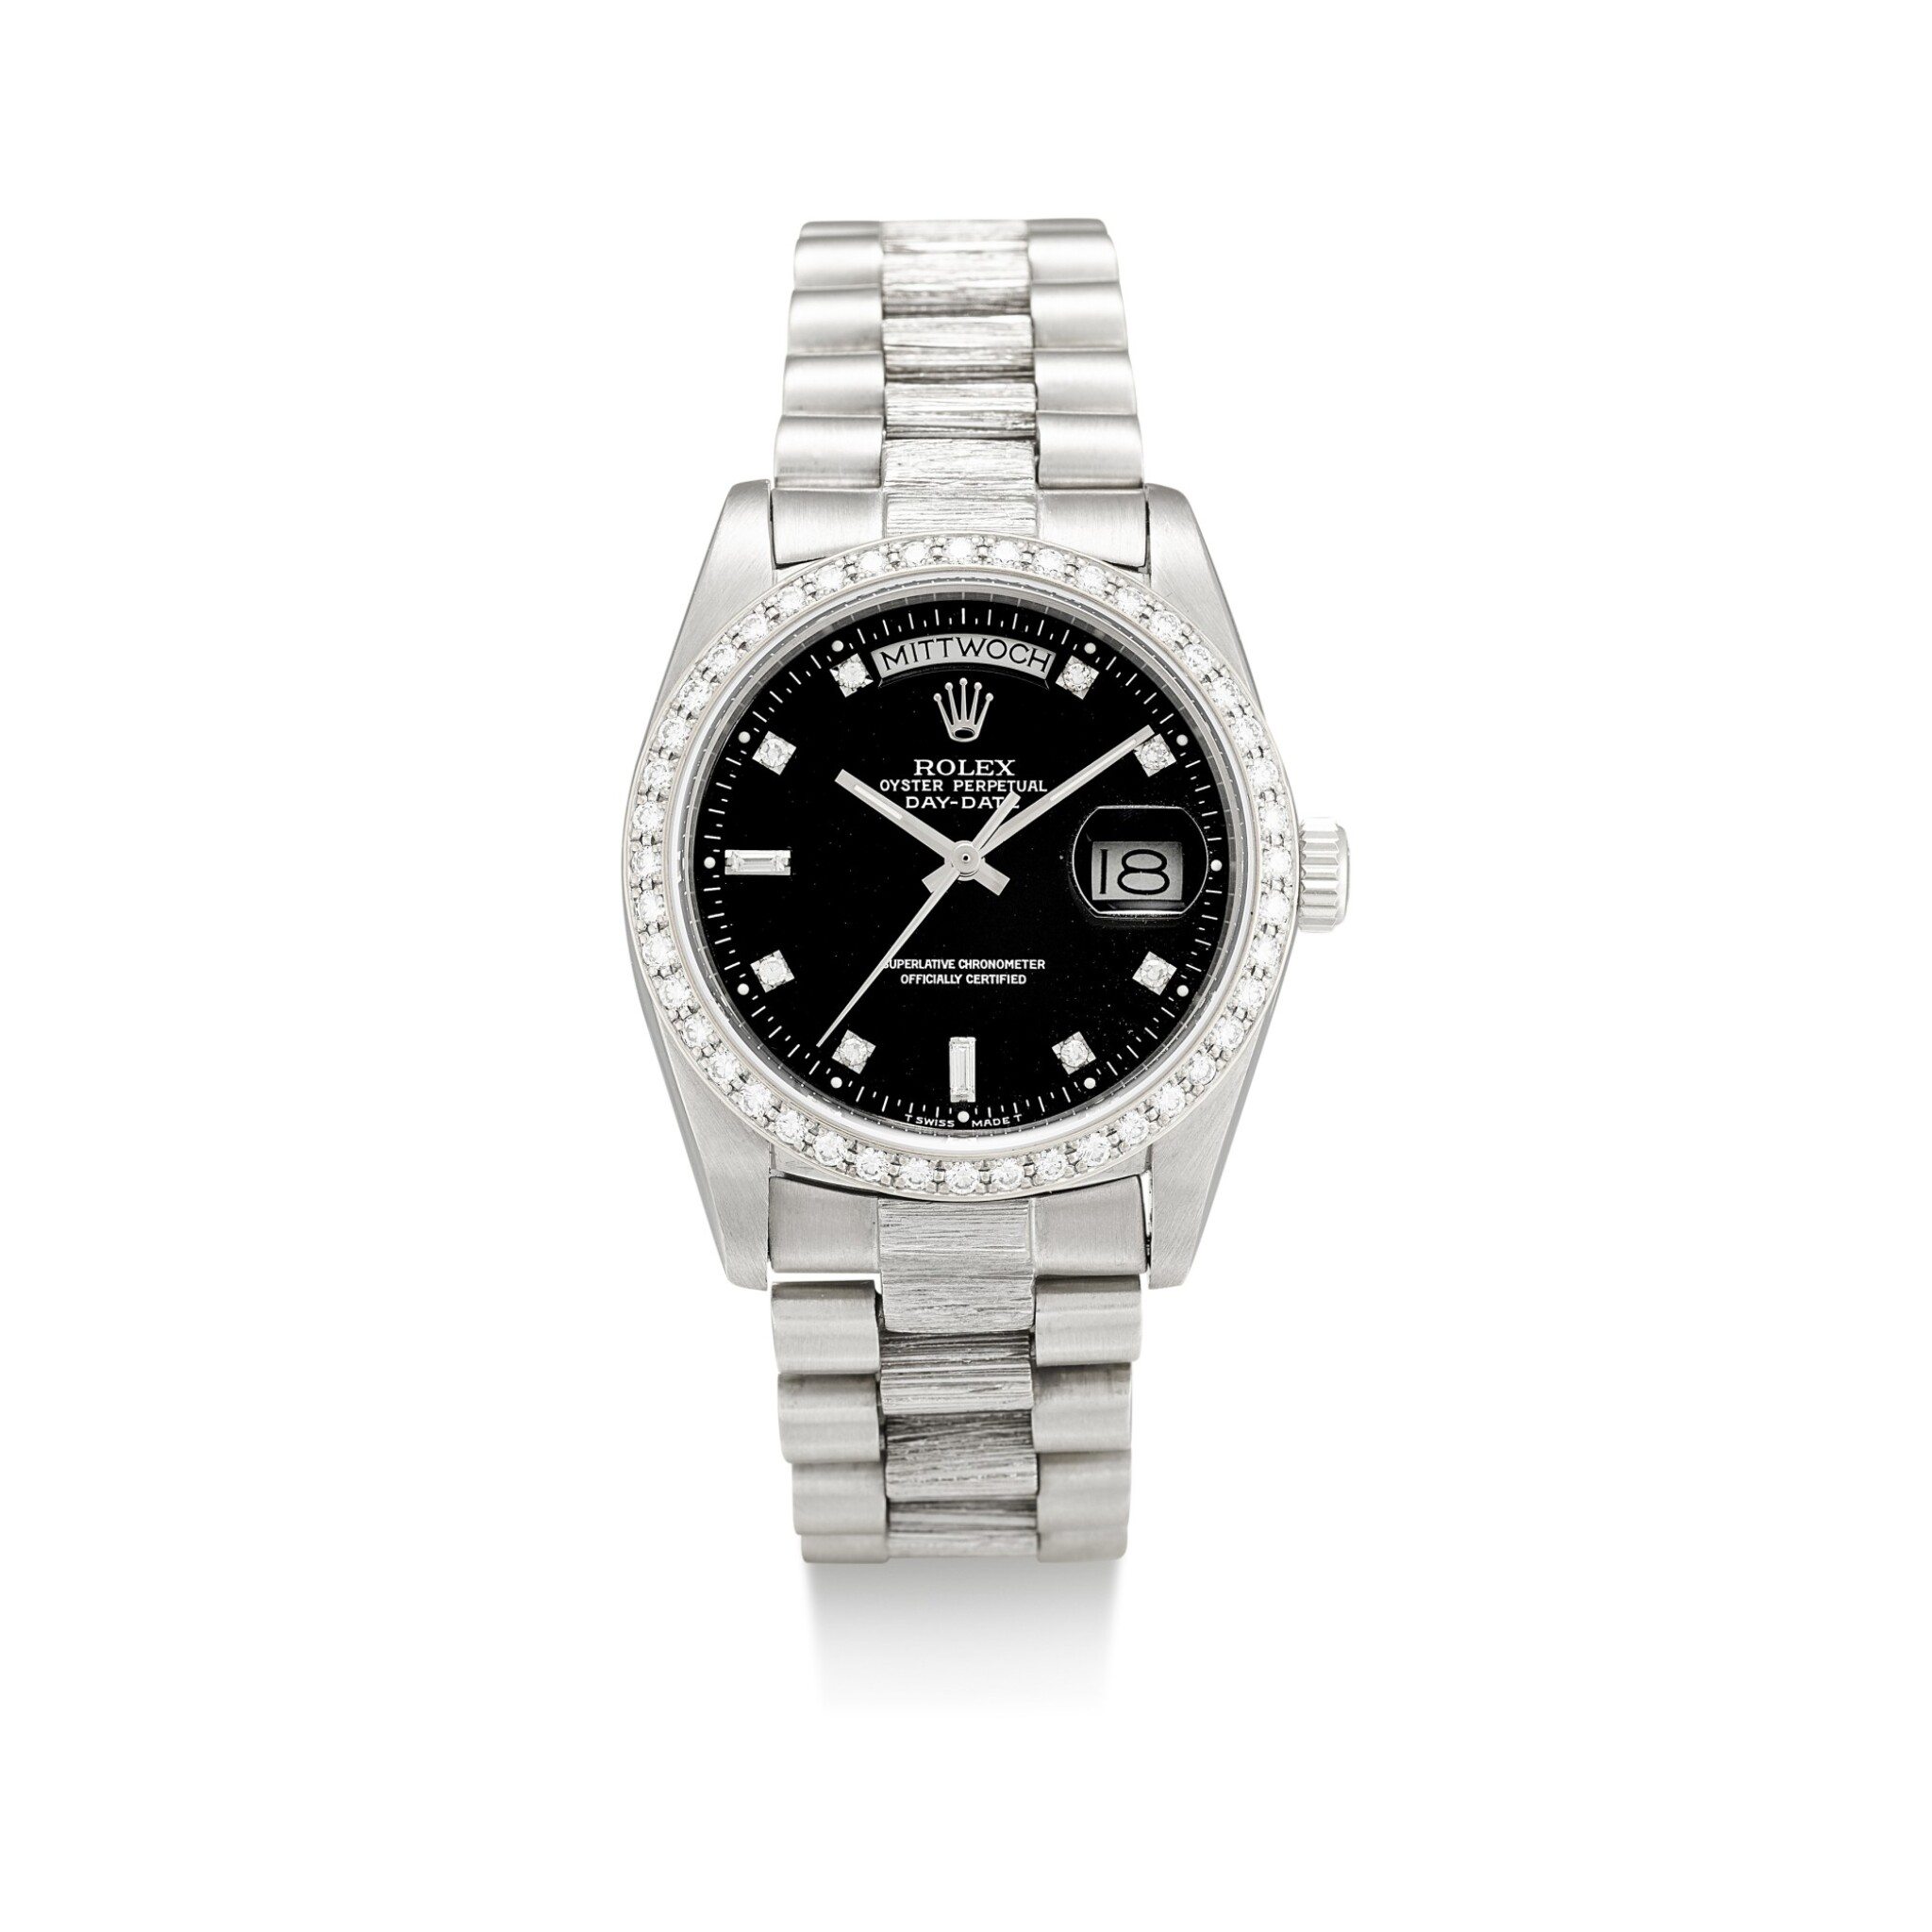 View full screen - View 1 of Lot 1107. ROLEX | DAY-DATE, REFERENCE 1803, A WHITE GOLD AND DIAMOND-SET WRISTWATCH WITH DAY, DATE, BRACELET AND LATER RODIUM-PLATED BEZEL, CIRCA 1982.